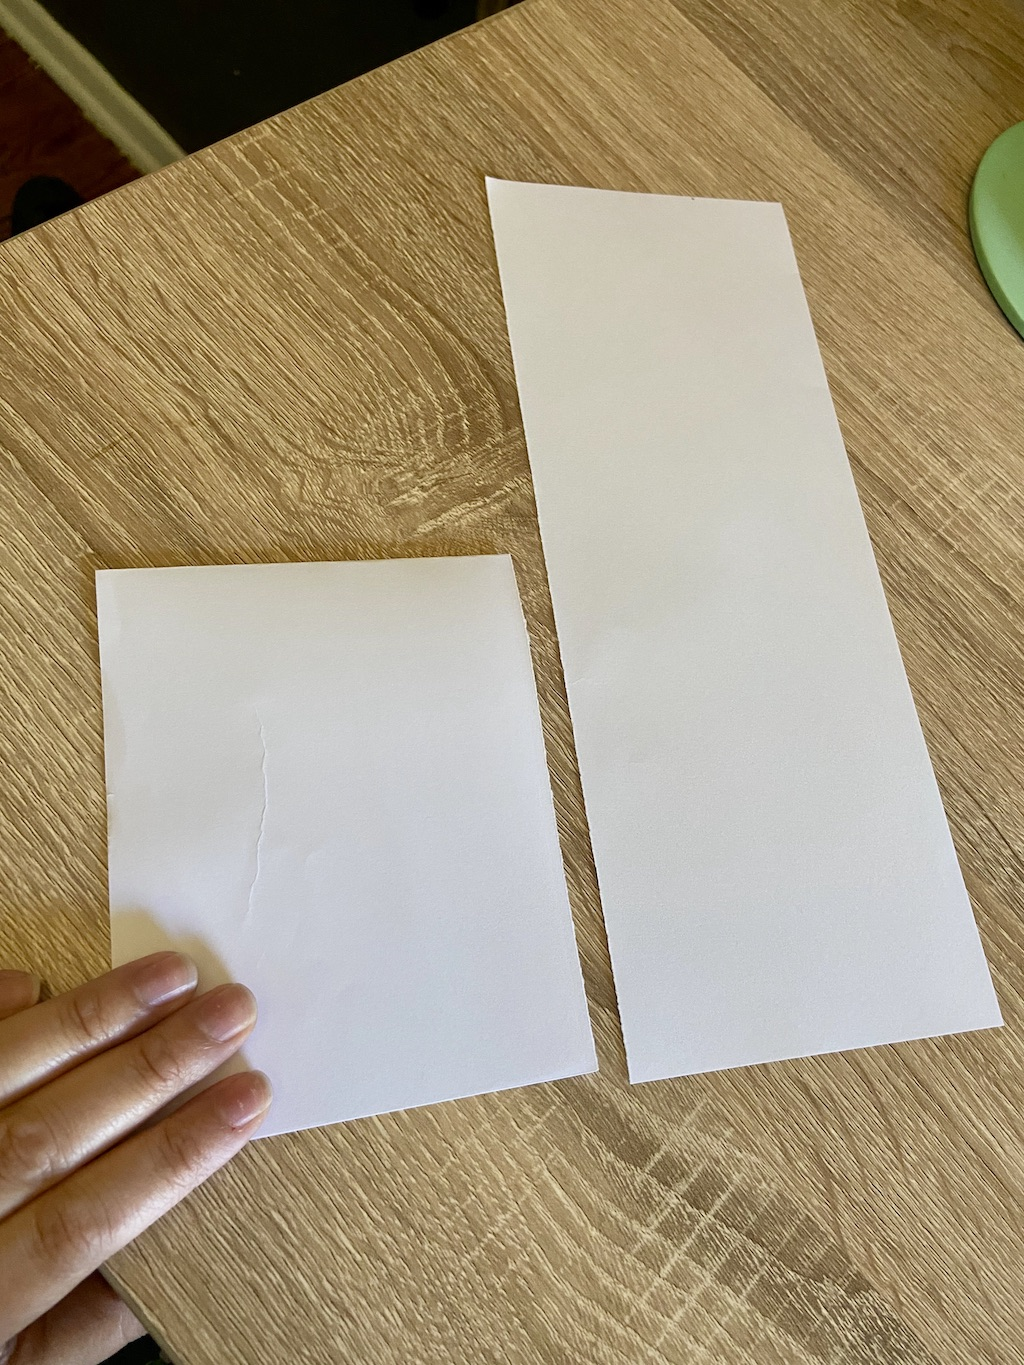 Fold each piece of paper in half widthwise.